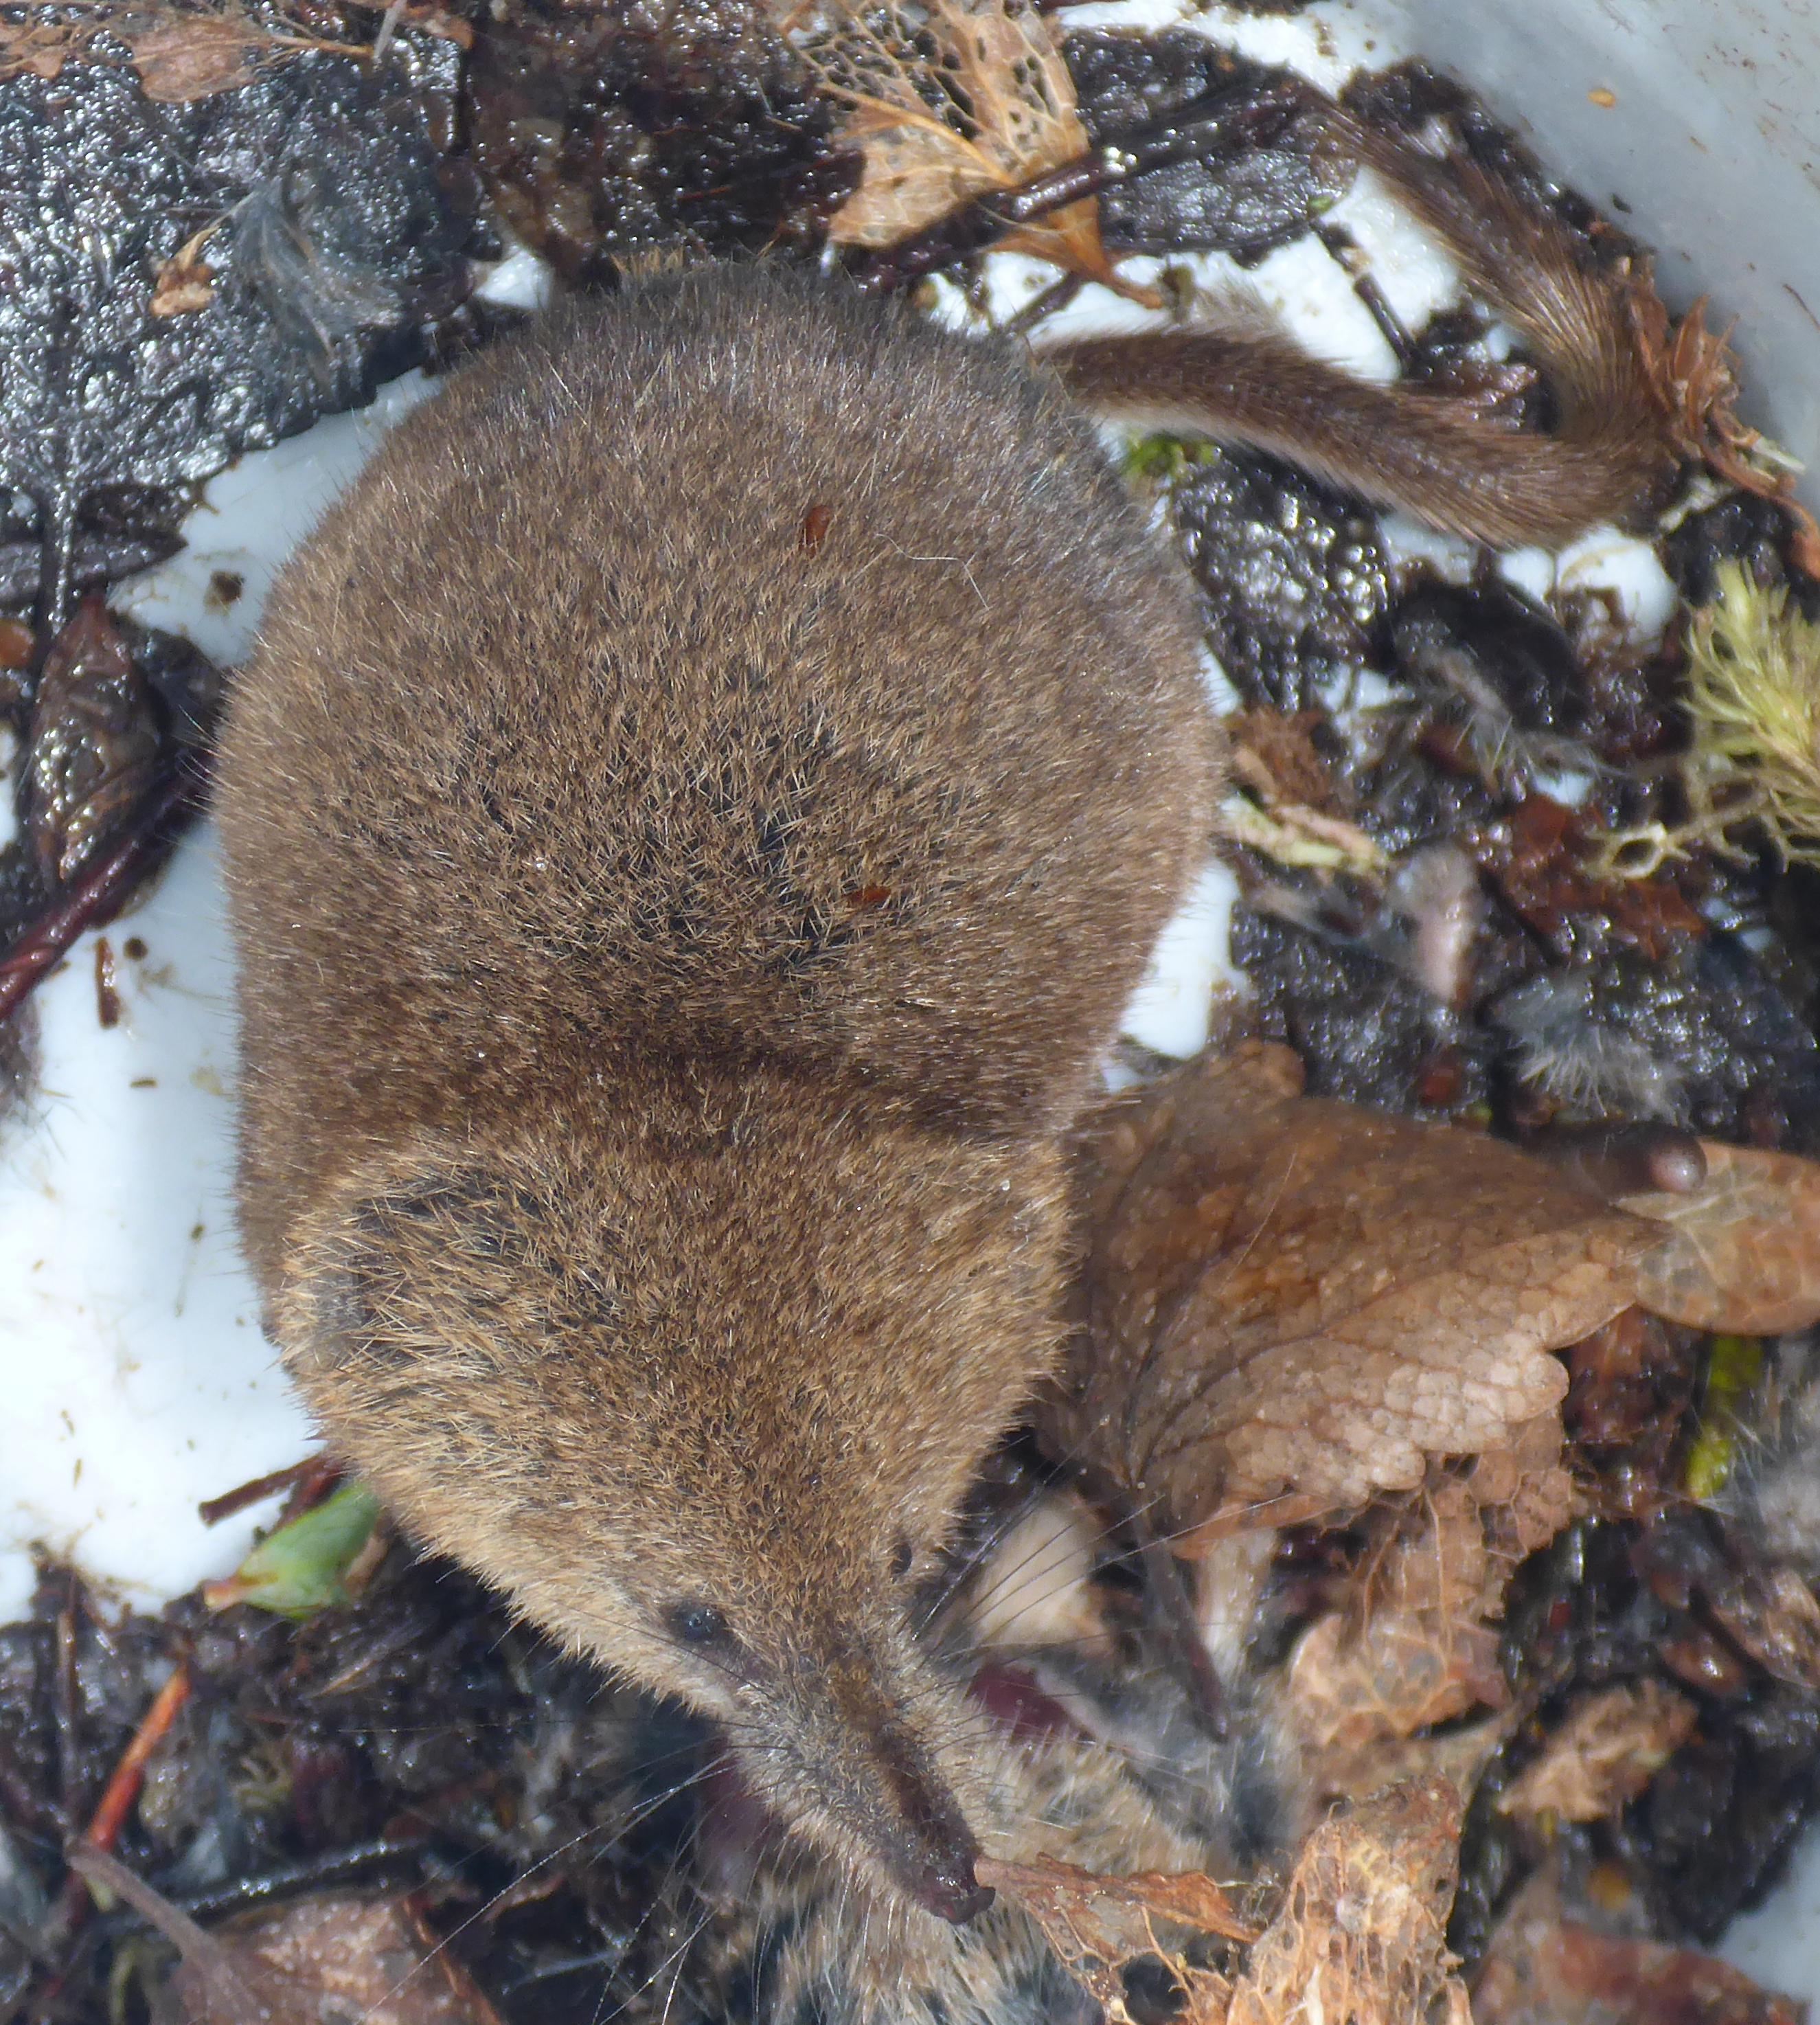 Study of Arctic shrews, parasites indicates how climate change may affect  ecosystems and communities | Kansas State University | News and  Communications Services